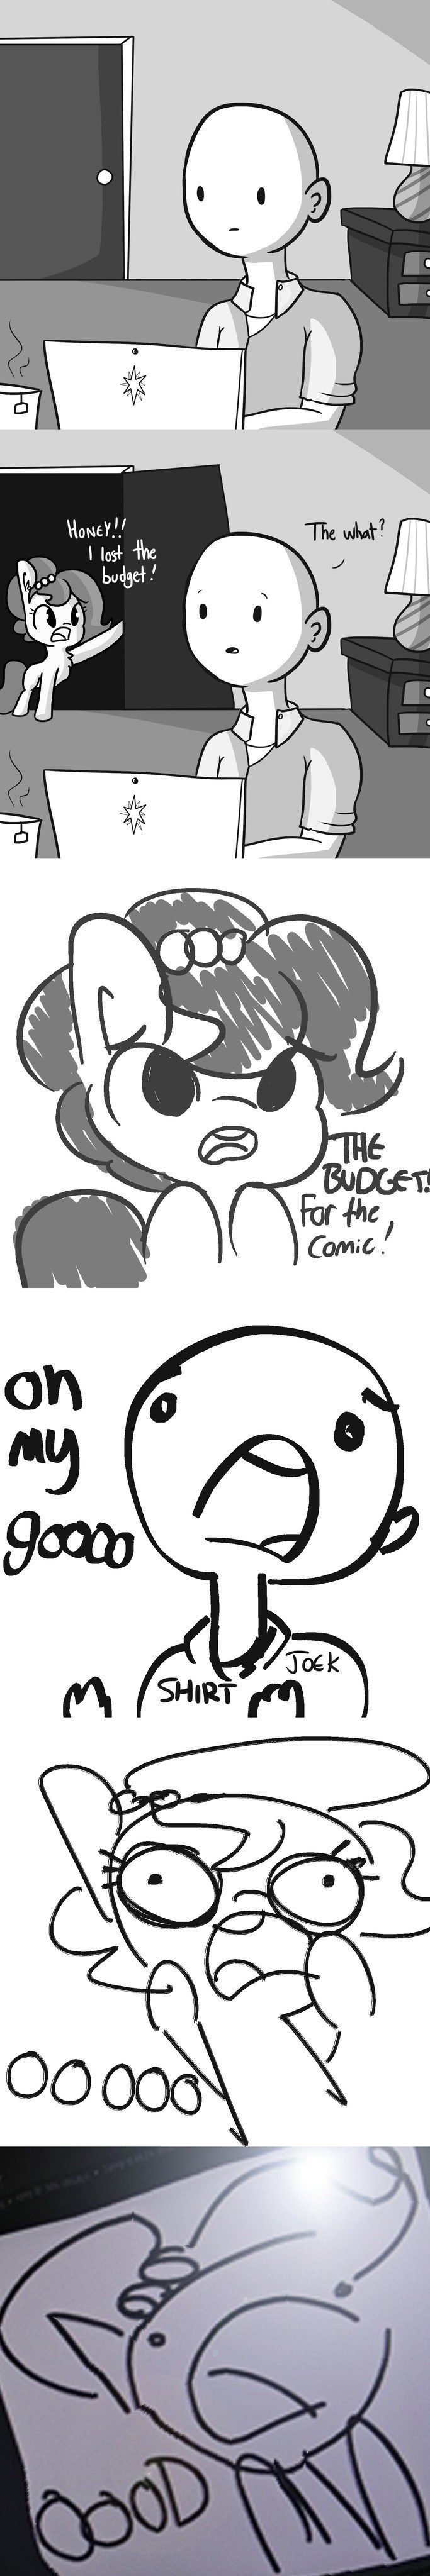 OC tj pones fourth wall comic horse wife - 9064712192